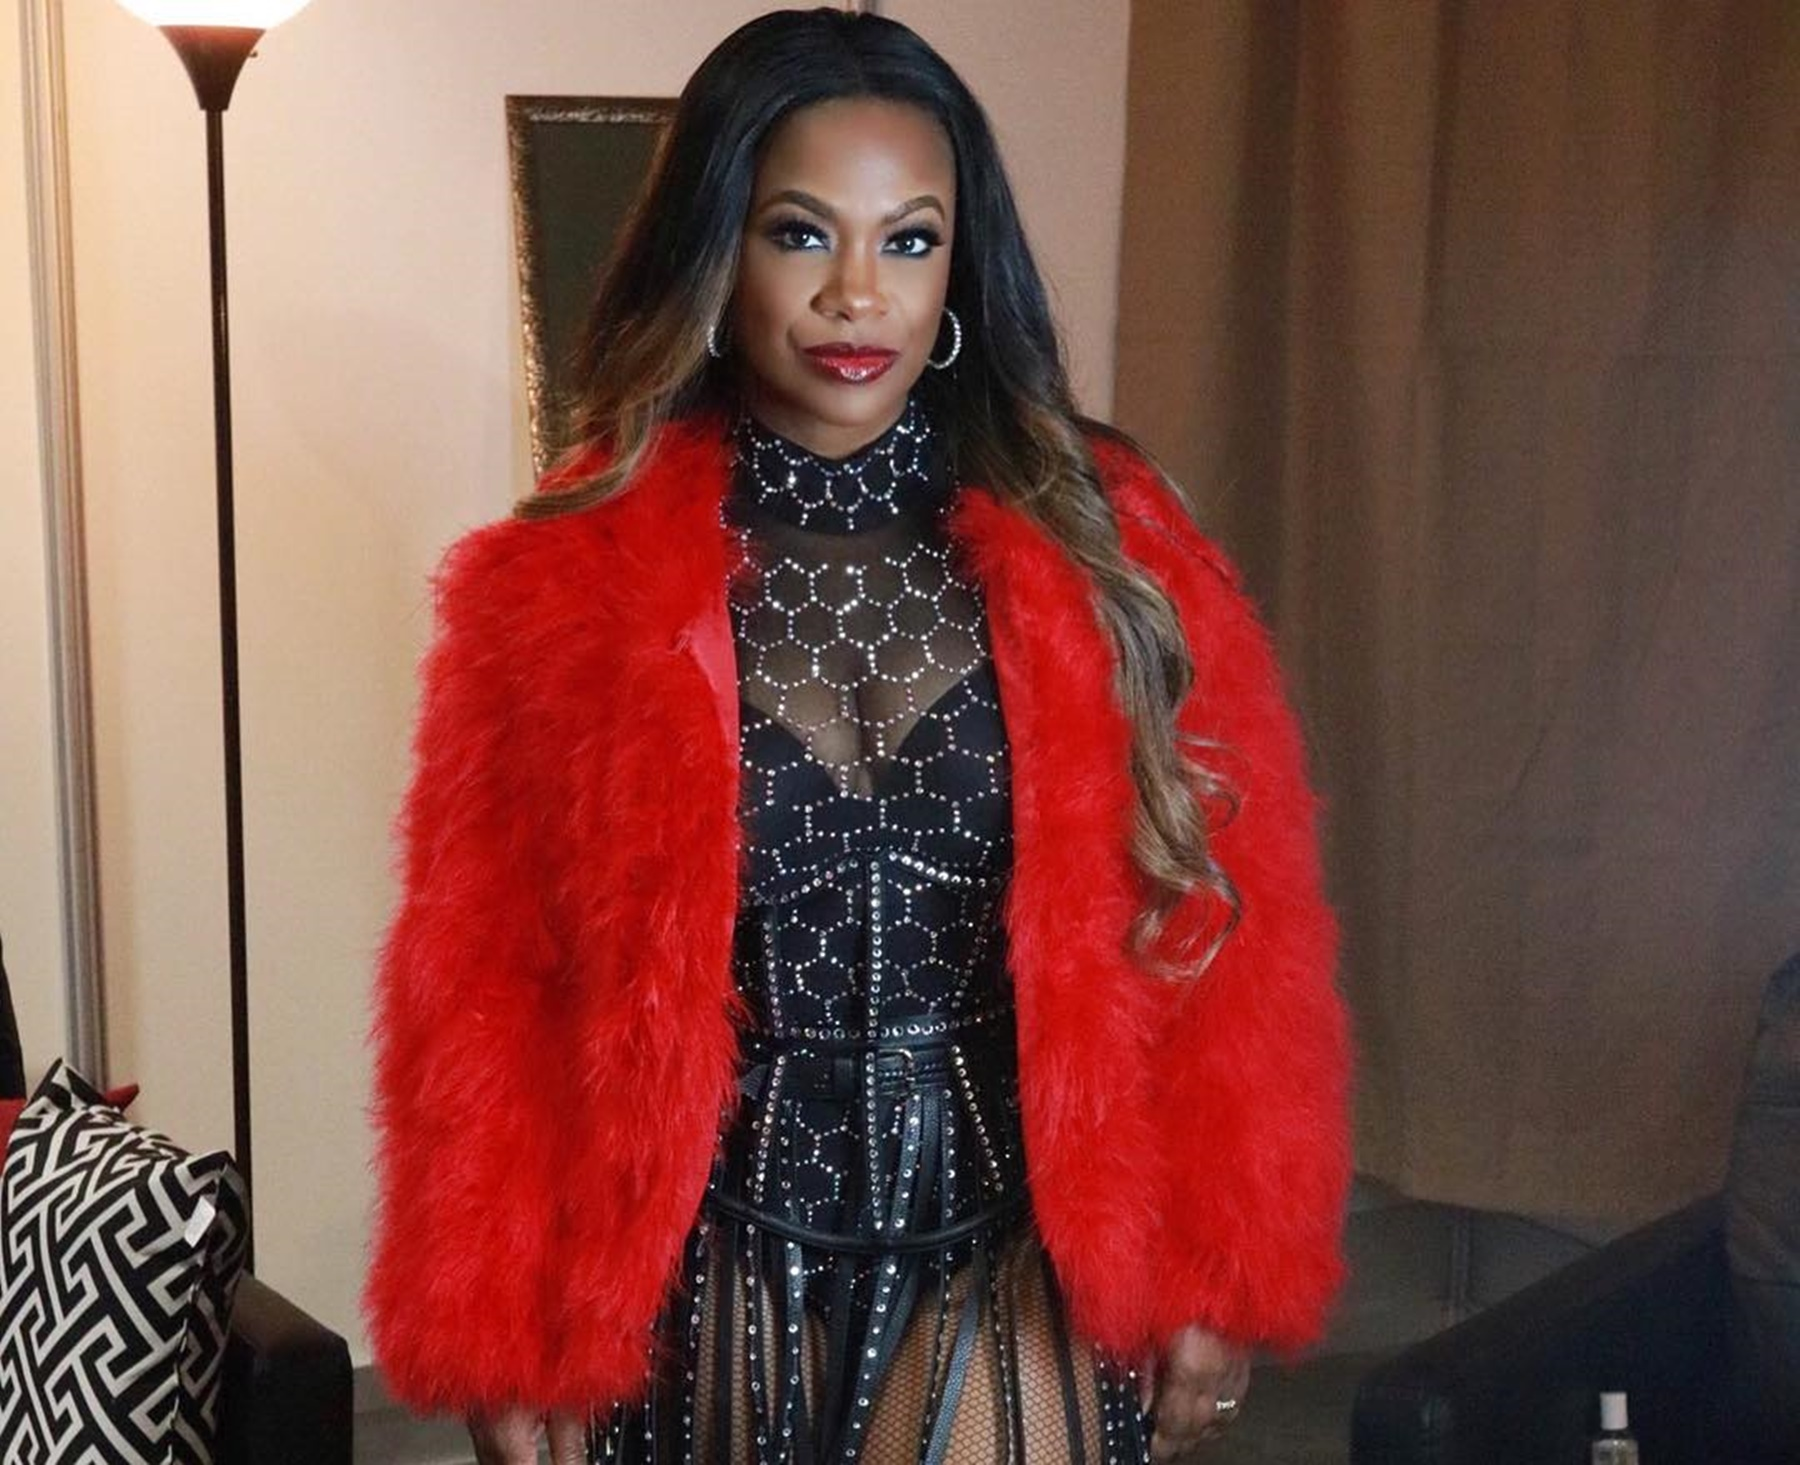 kandi-burruss-like-kim-kardashian-might-have-a-huge-announcement-soon-will-todd-tuckers-wife-go-al-the-way-rhoa-fans-have-her-back